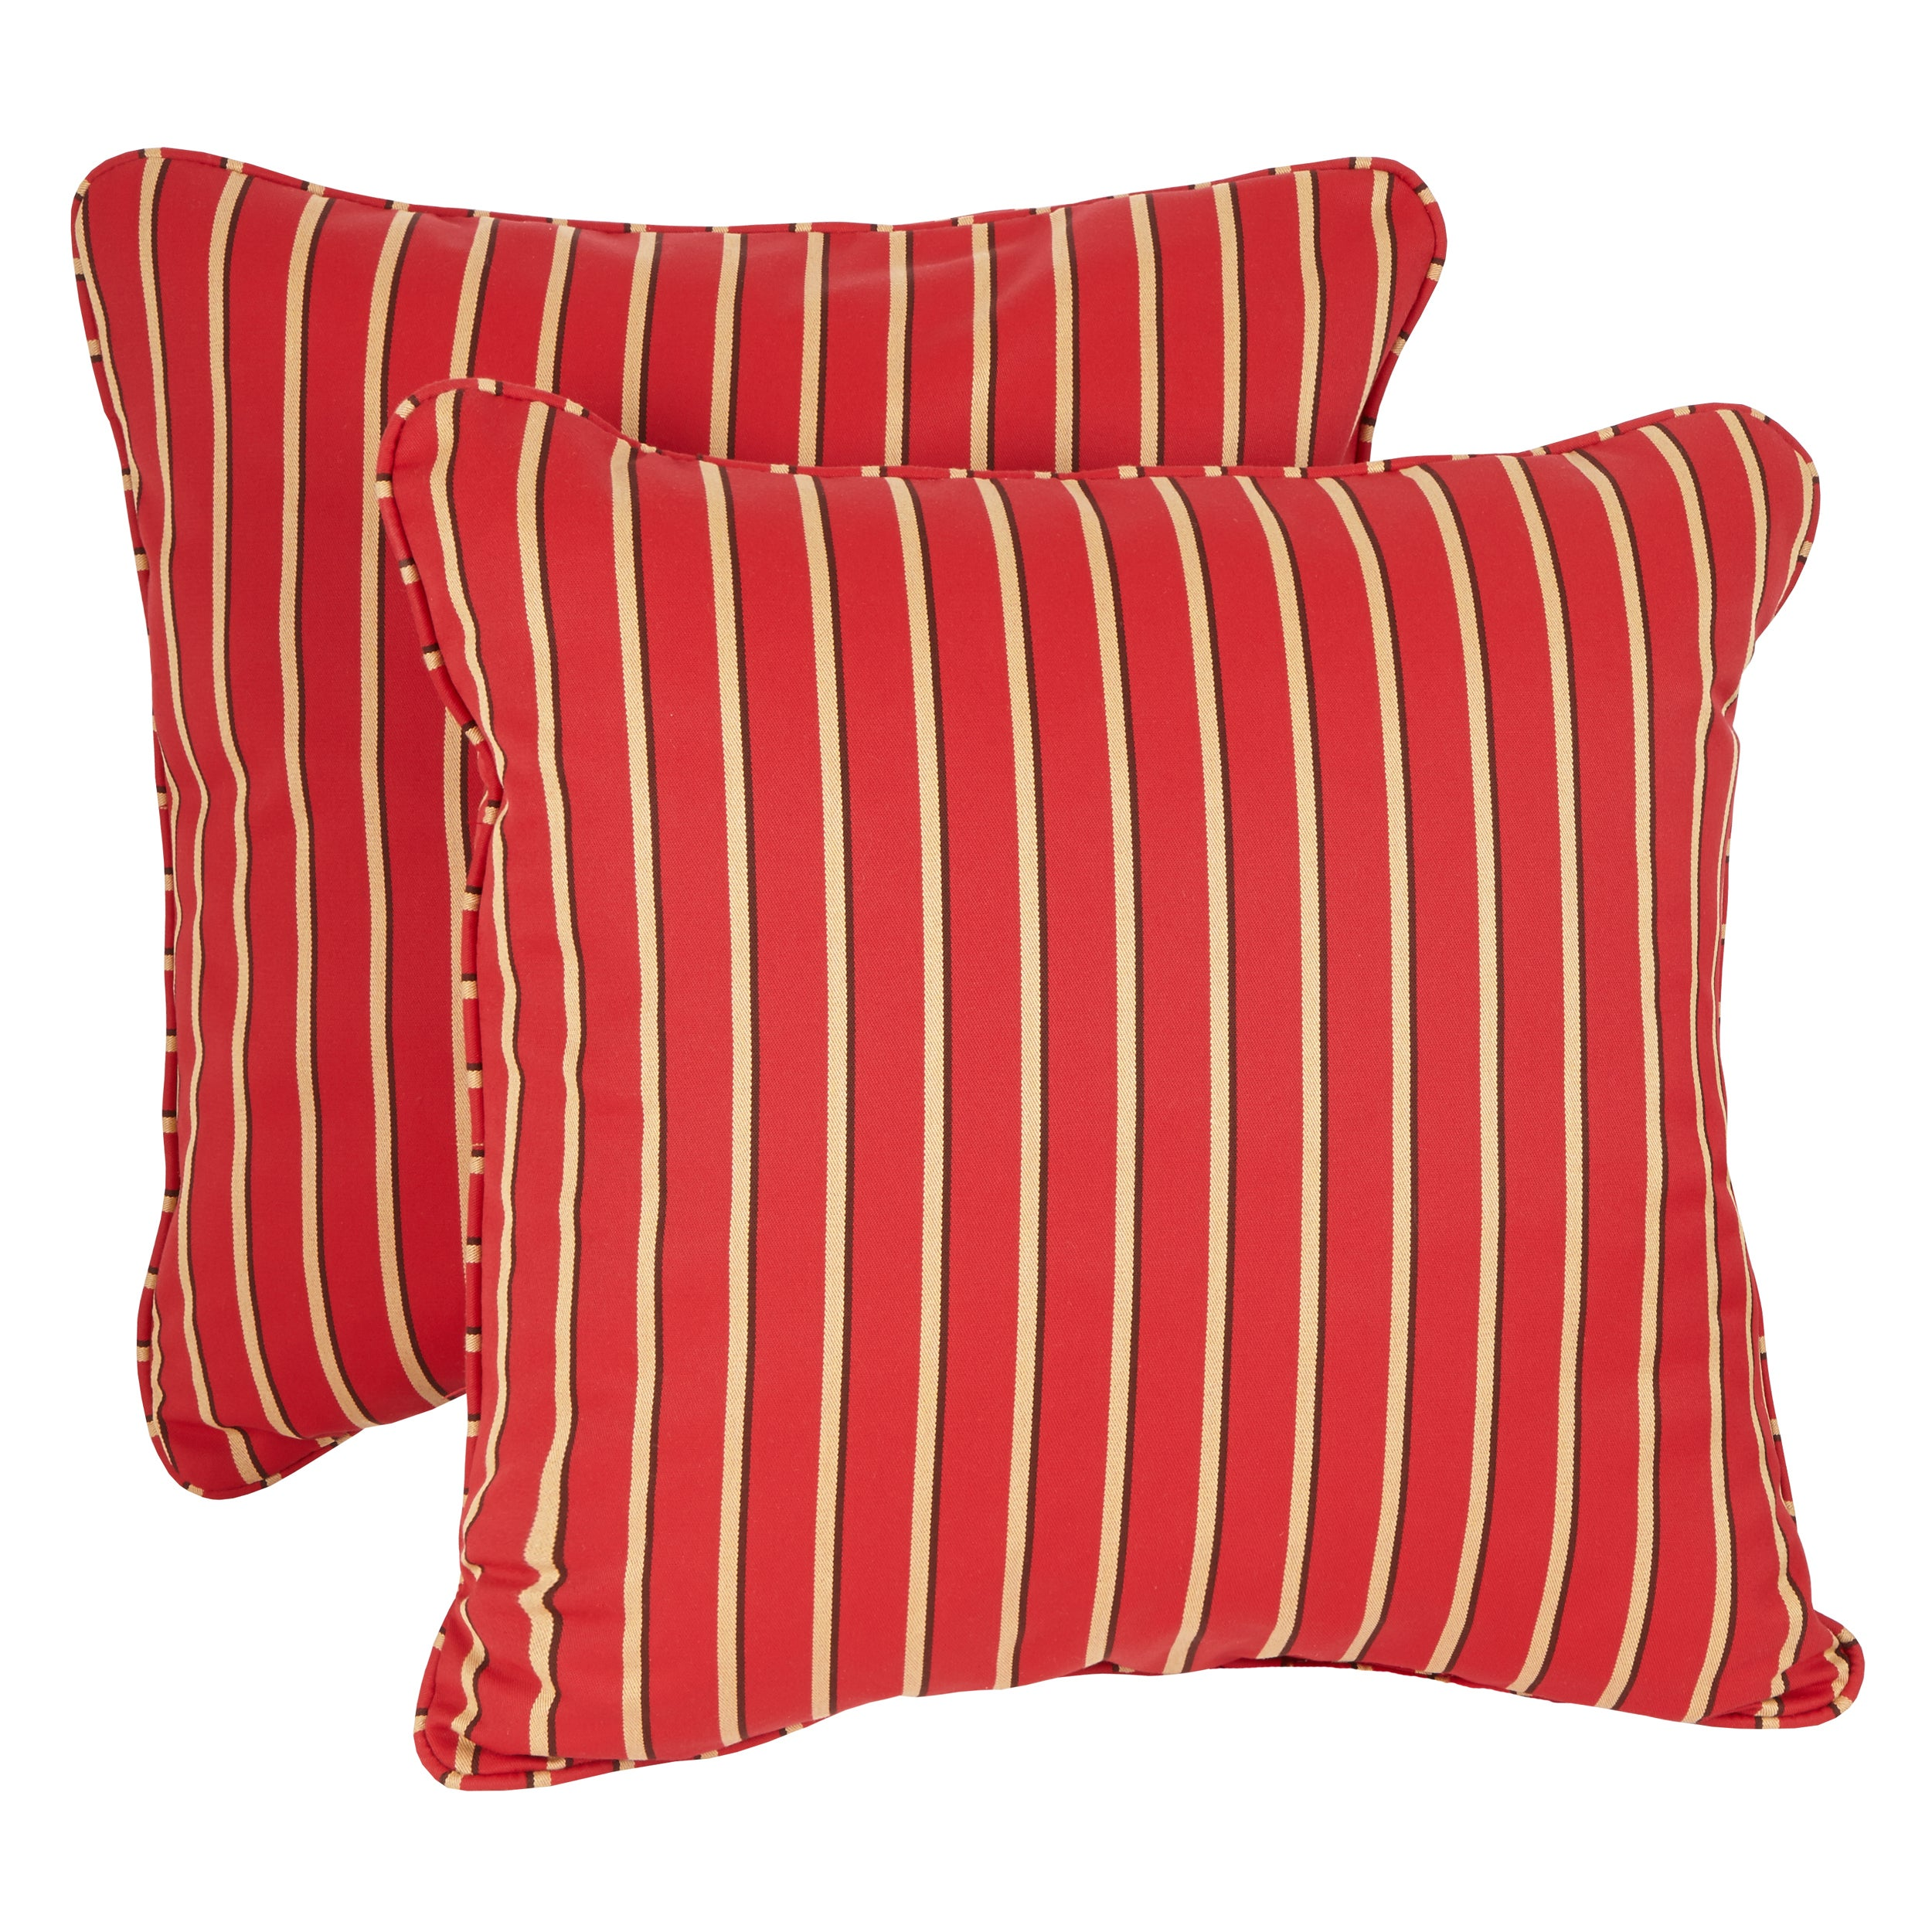 outdoor backyards trendy ideas throw pillow landscaping and red pillows decorative cozy